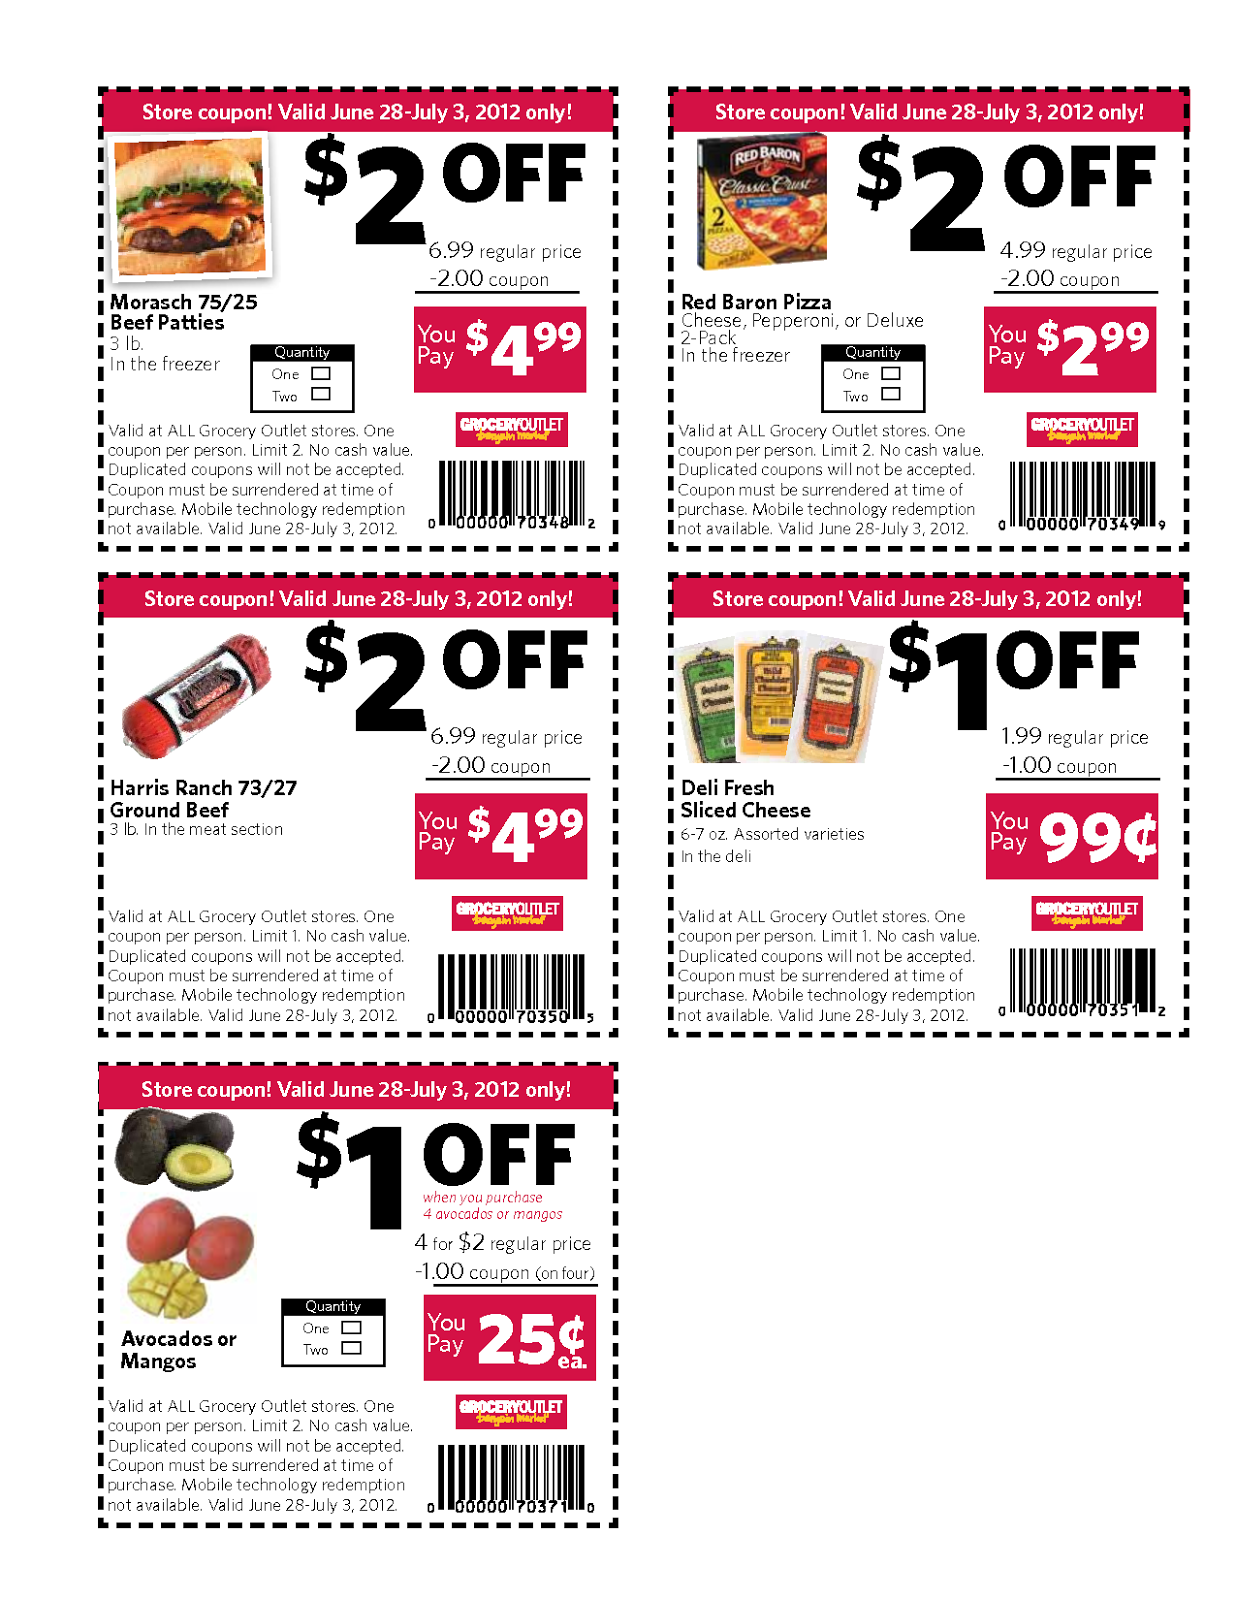 Printable coupons need a barcode so that they can be scanned at the store. If your coupon prints without a barcode, this is usually a sign that there is an issue with java on your computer. Try to update java on your computer to see if that helps.